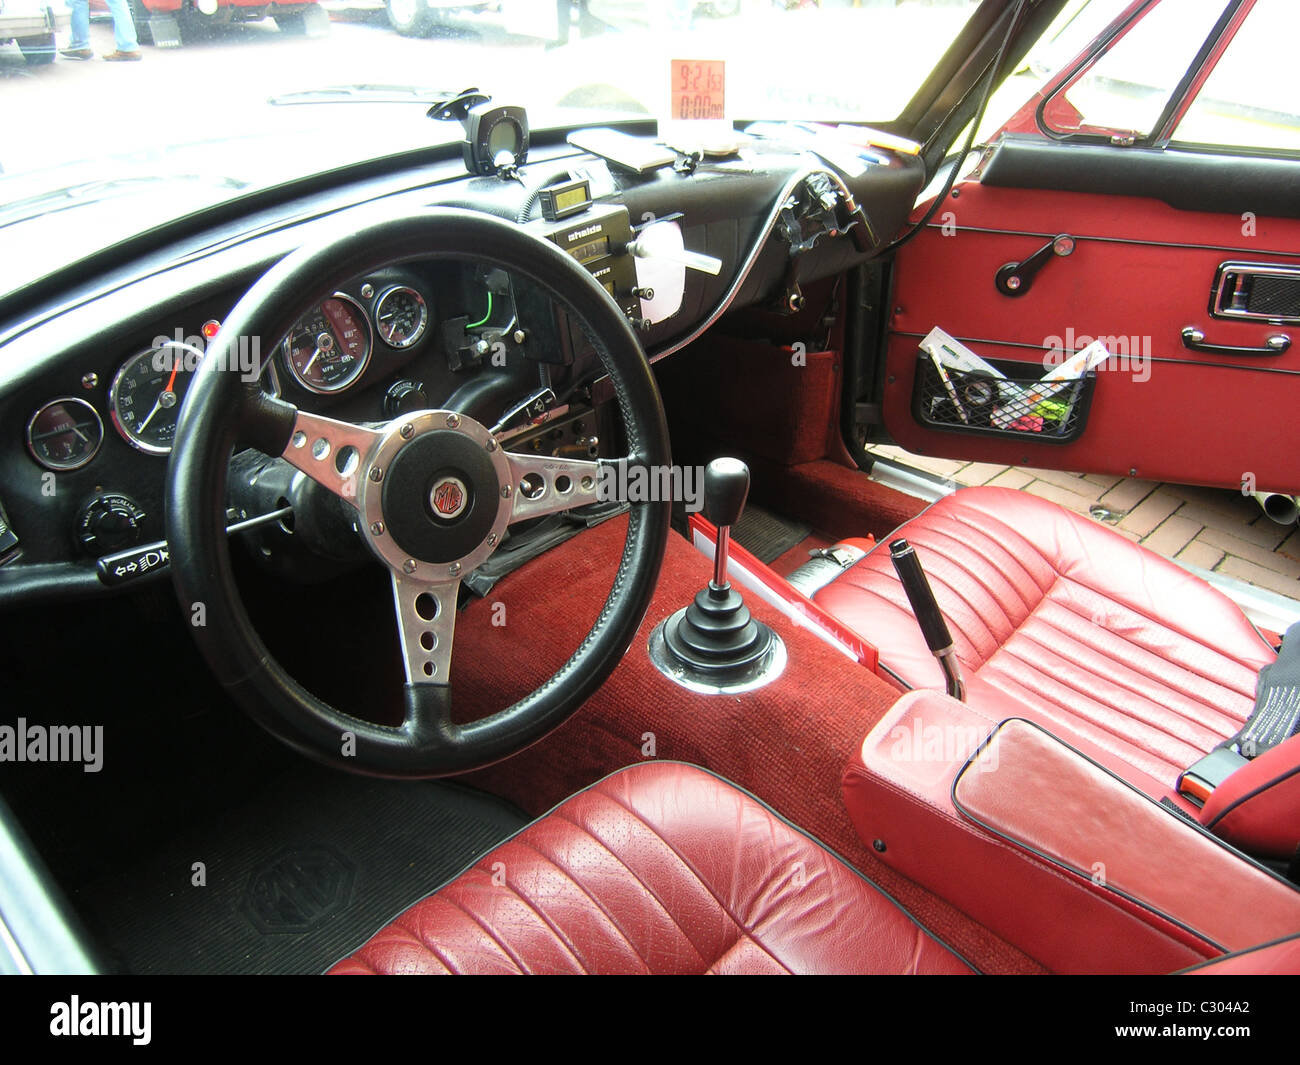 interior of classic mgb rally car ready for competition stock photo royalty free image. Black Bedroom Furniture Sets. Home Design Ideas